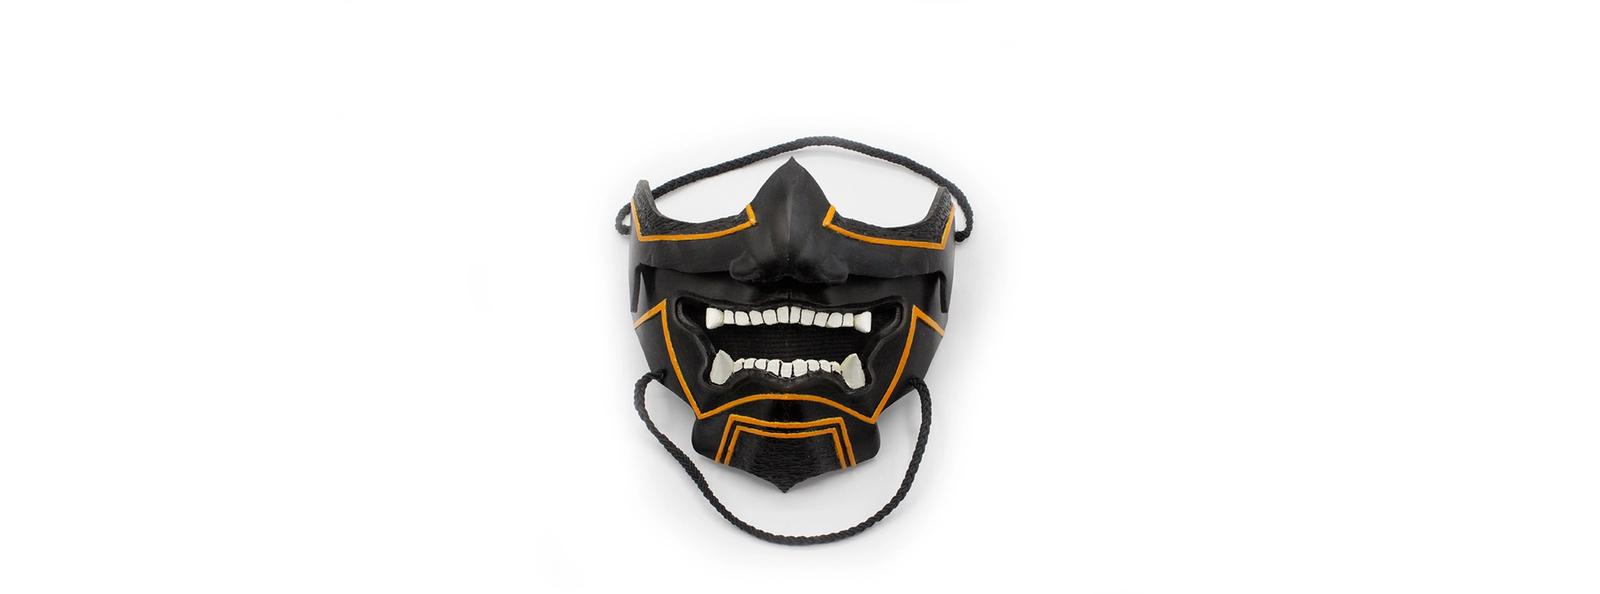 A 3D printed mask that can be worn outside of a face mask